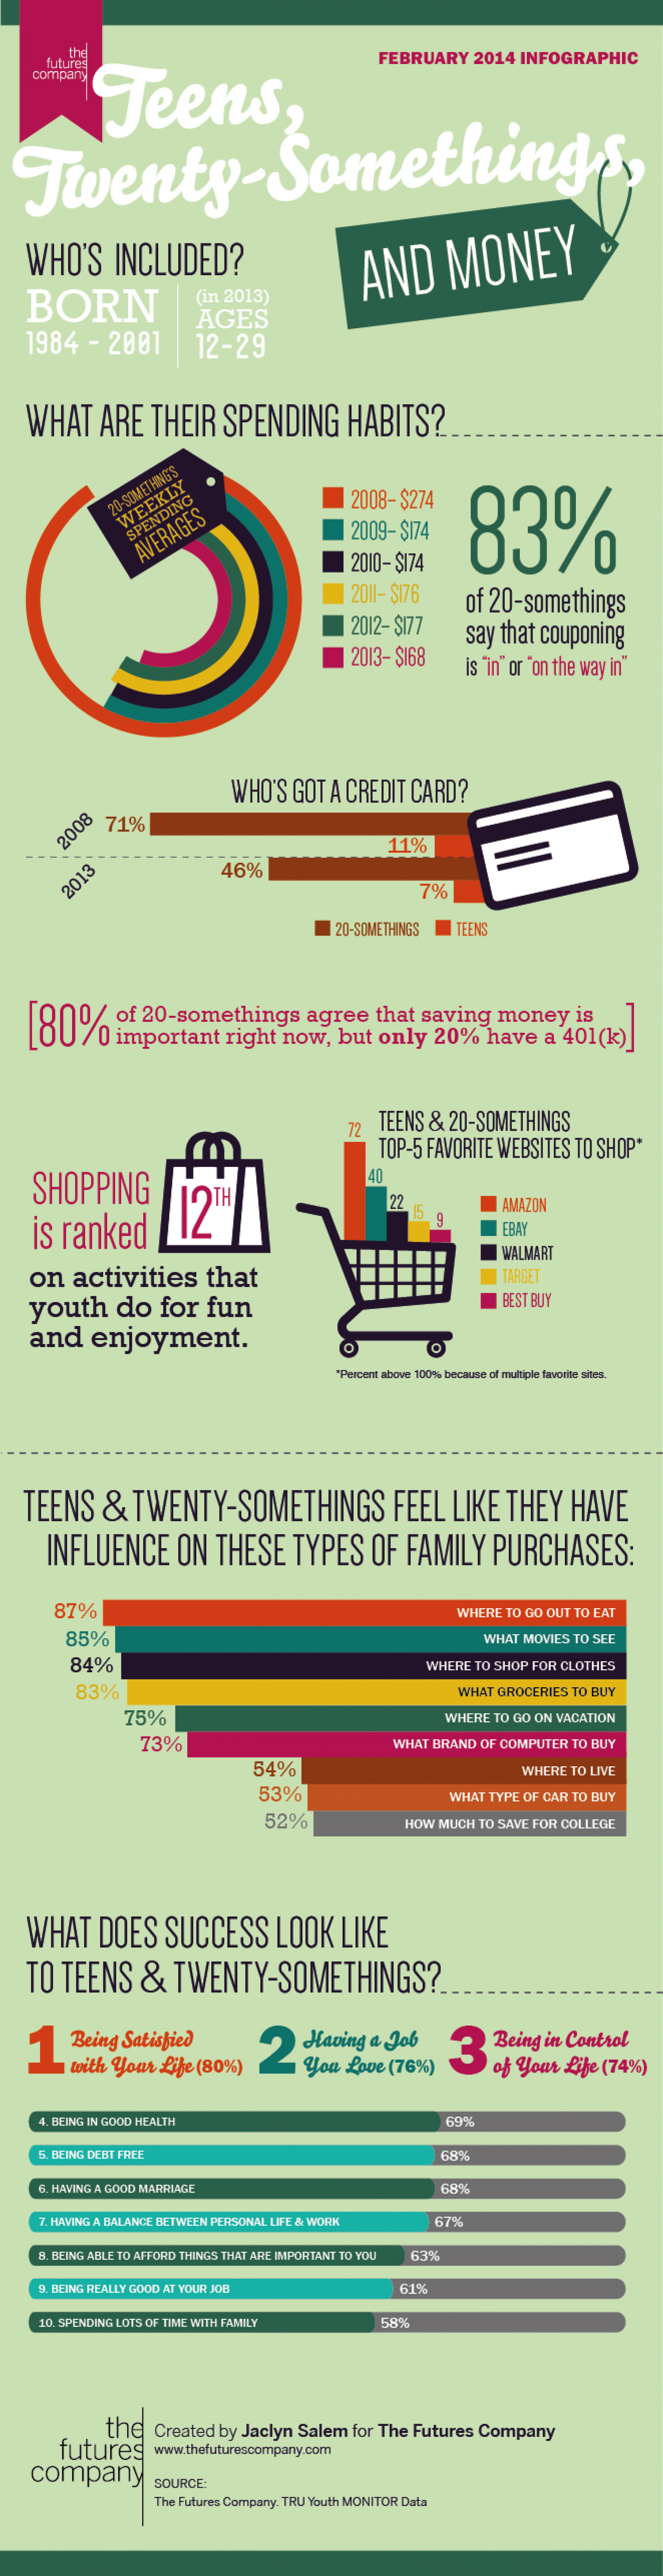 Teens, Twenty-Somethings, and Money Infographic